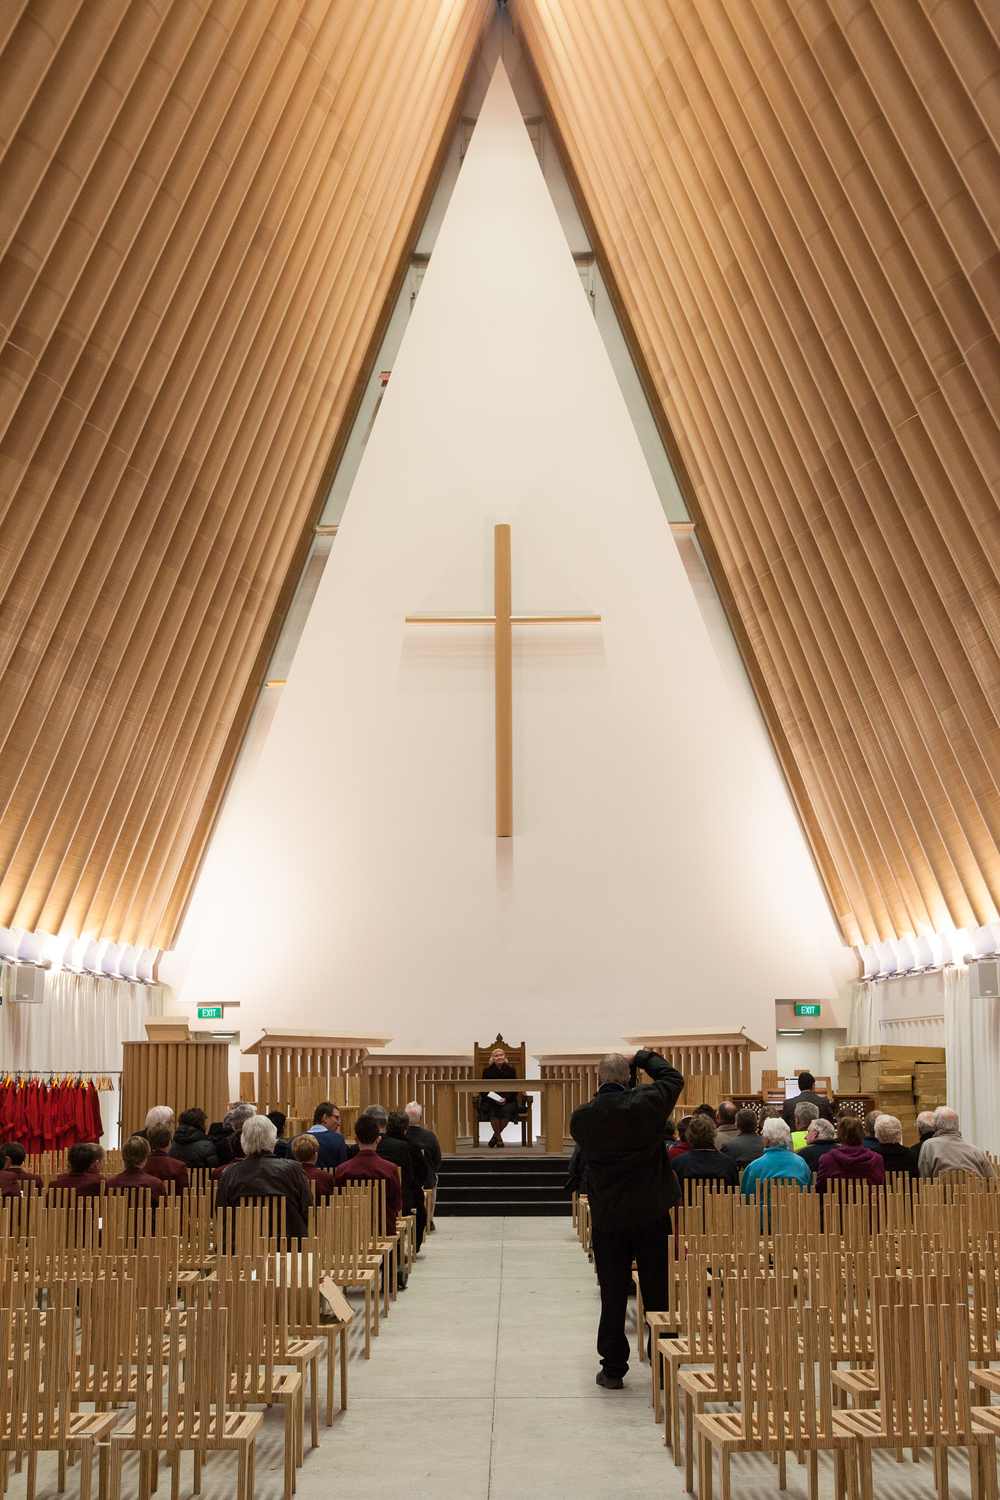 Monastic in its simplicity, the cardboard crucifix appears to float above the congregation